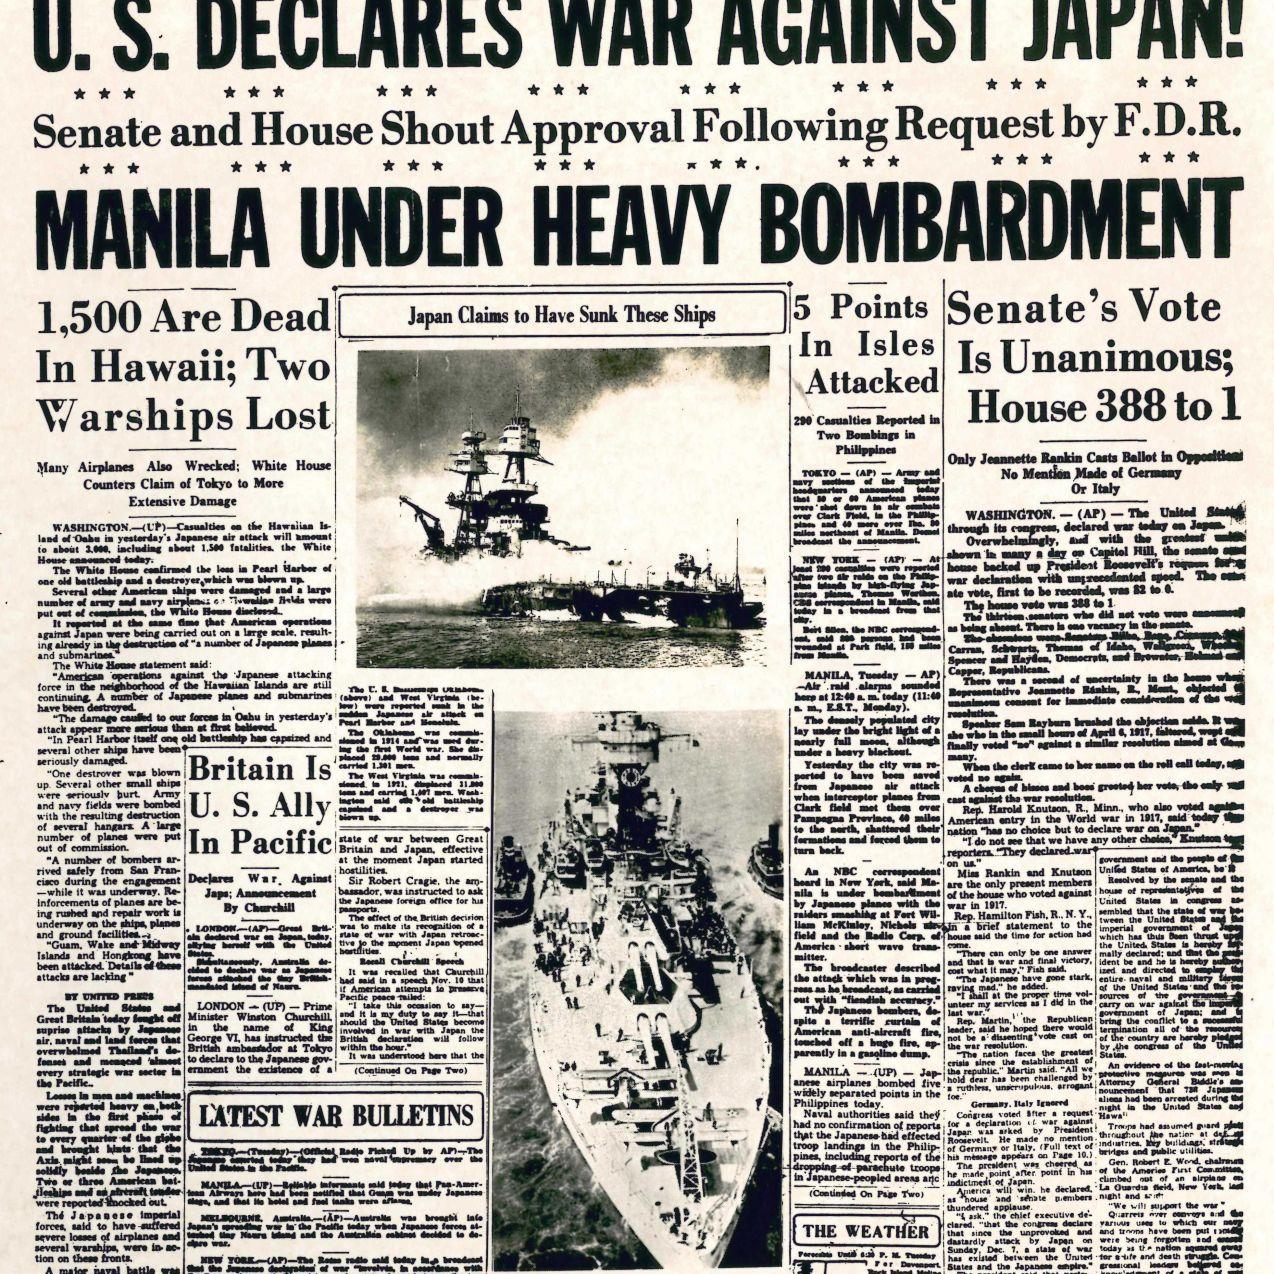 Dec  8, 1941 front page: 1,500 Are Dead in Hawaii